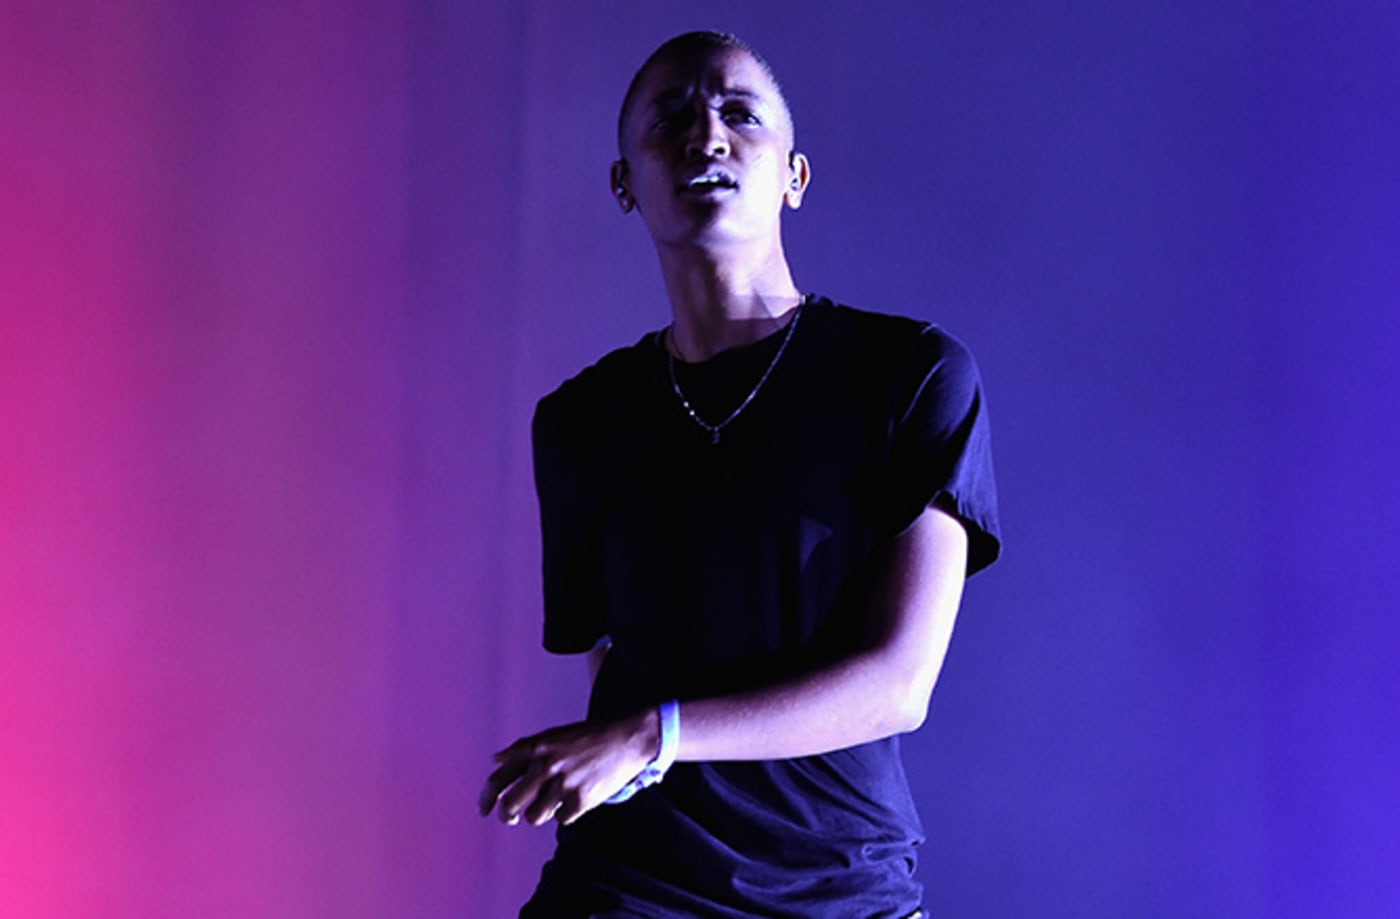 This is a photo of Syd.